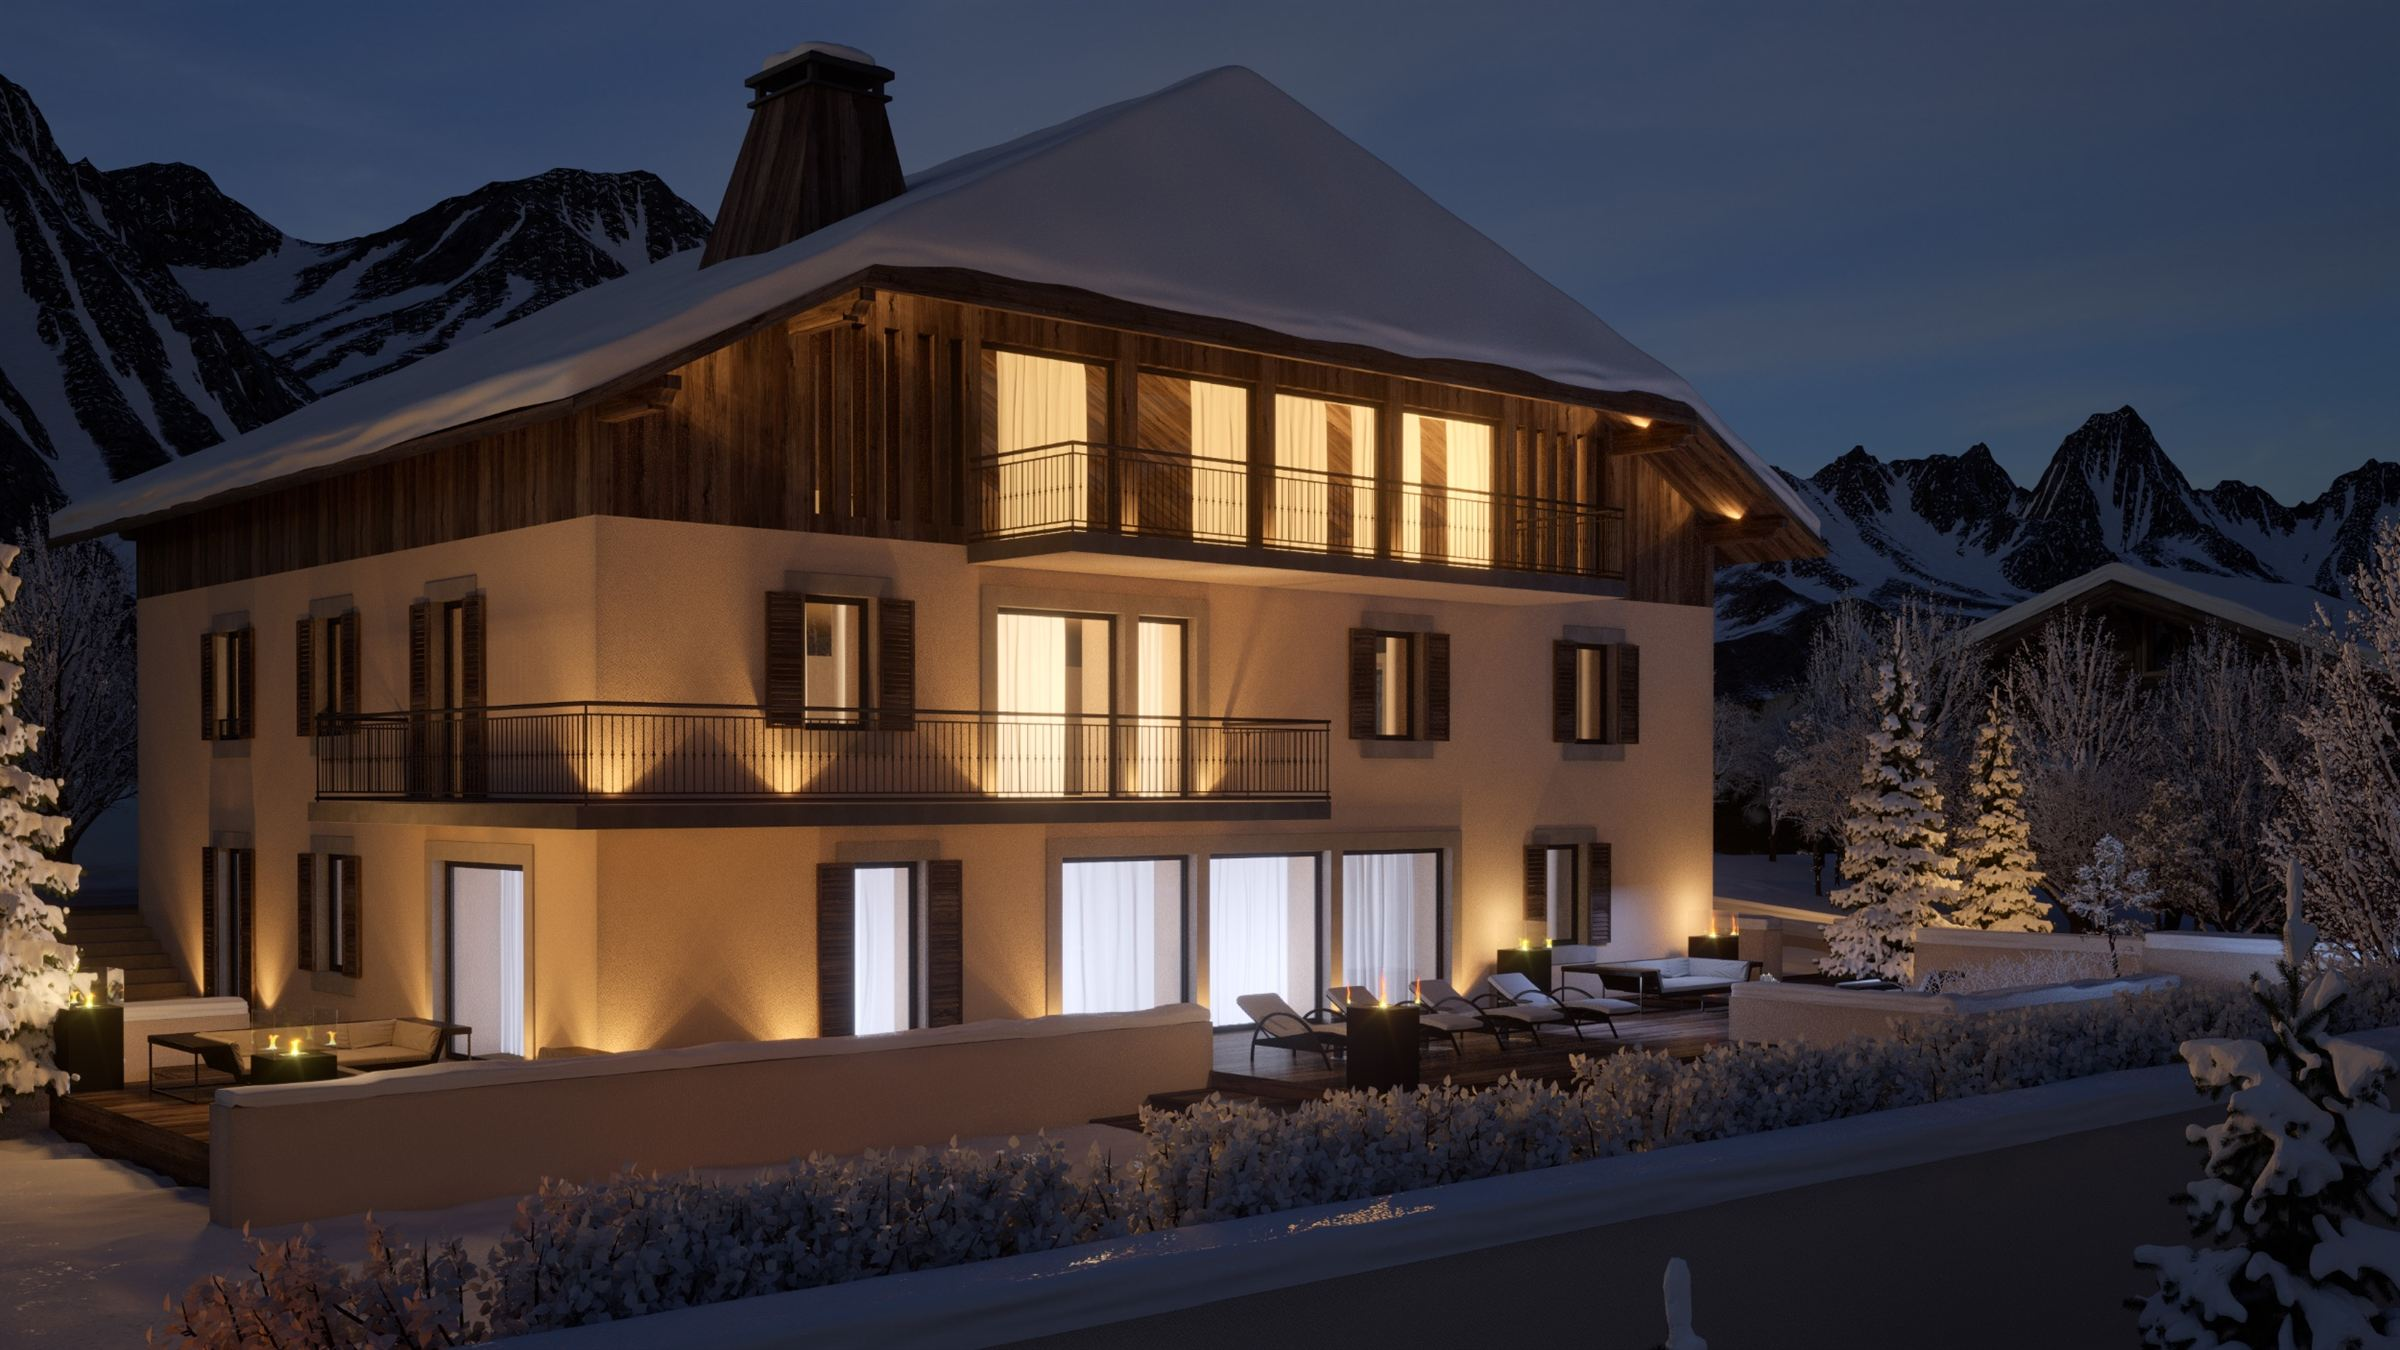 Moradia para Venda às High luxury farmhouse close to the centre Chamonix Mont Blanc, Rhone-Alpes, 74400 França